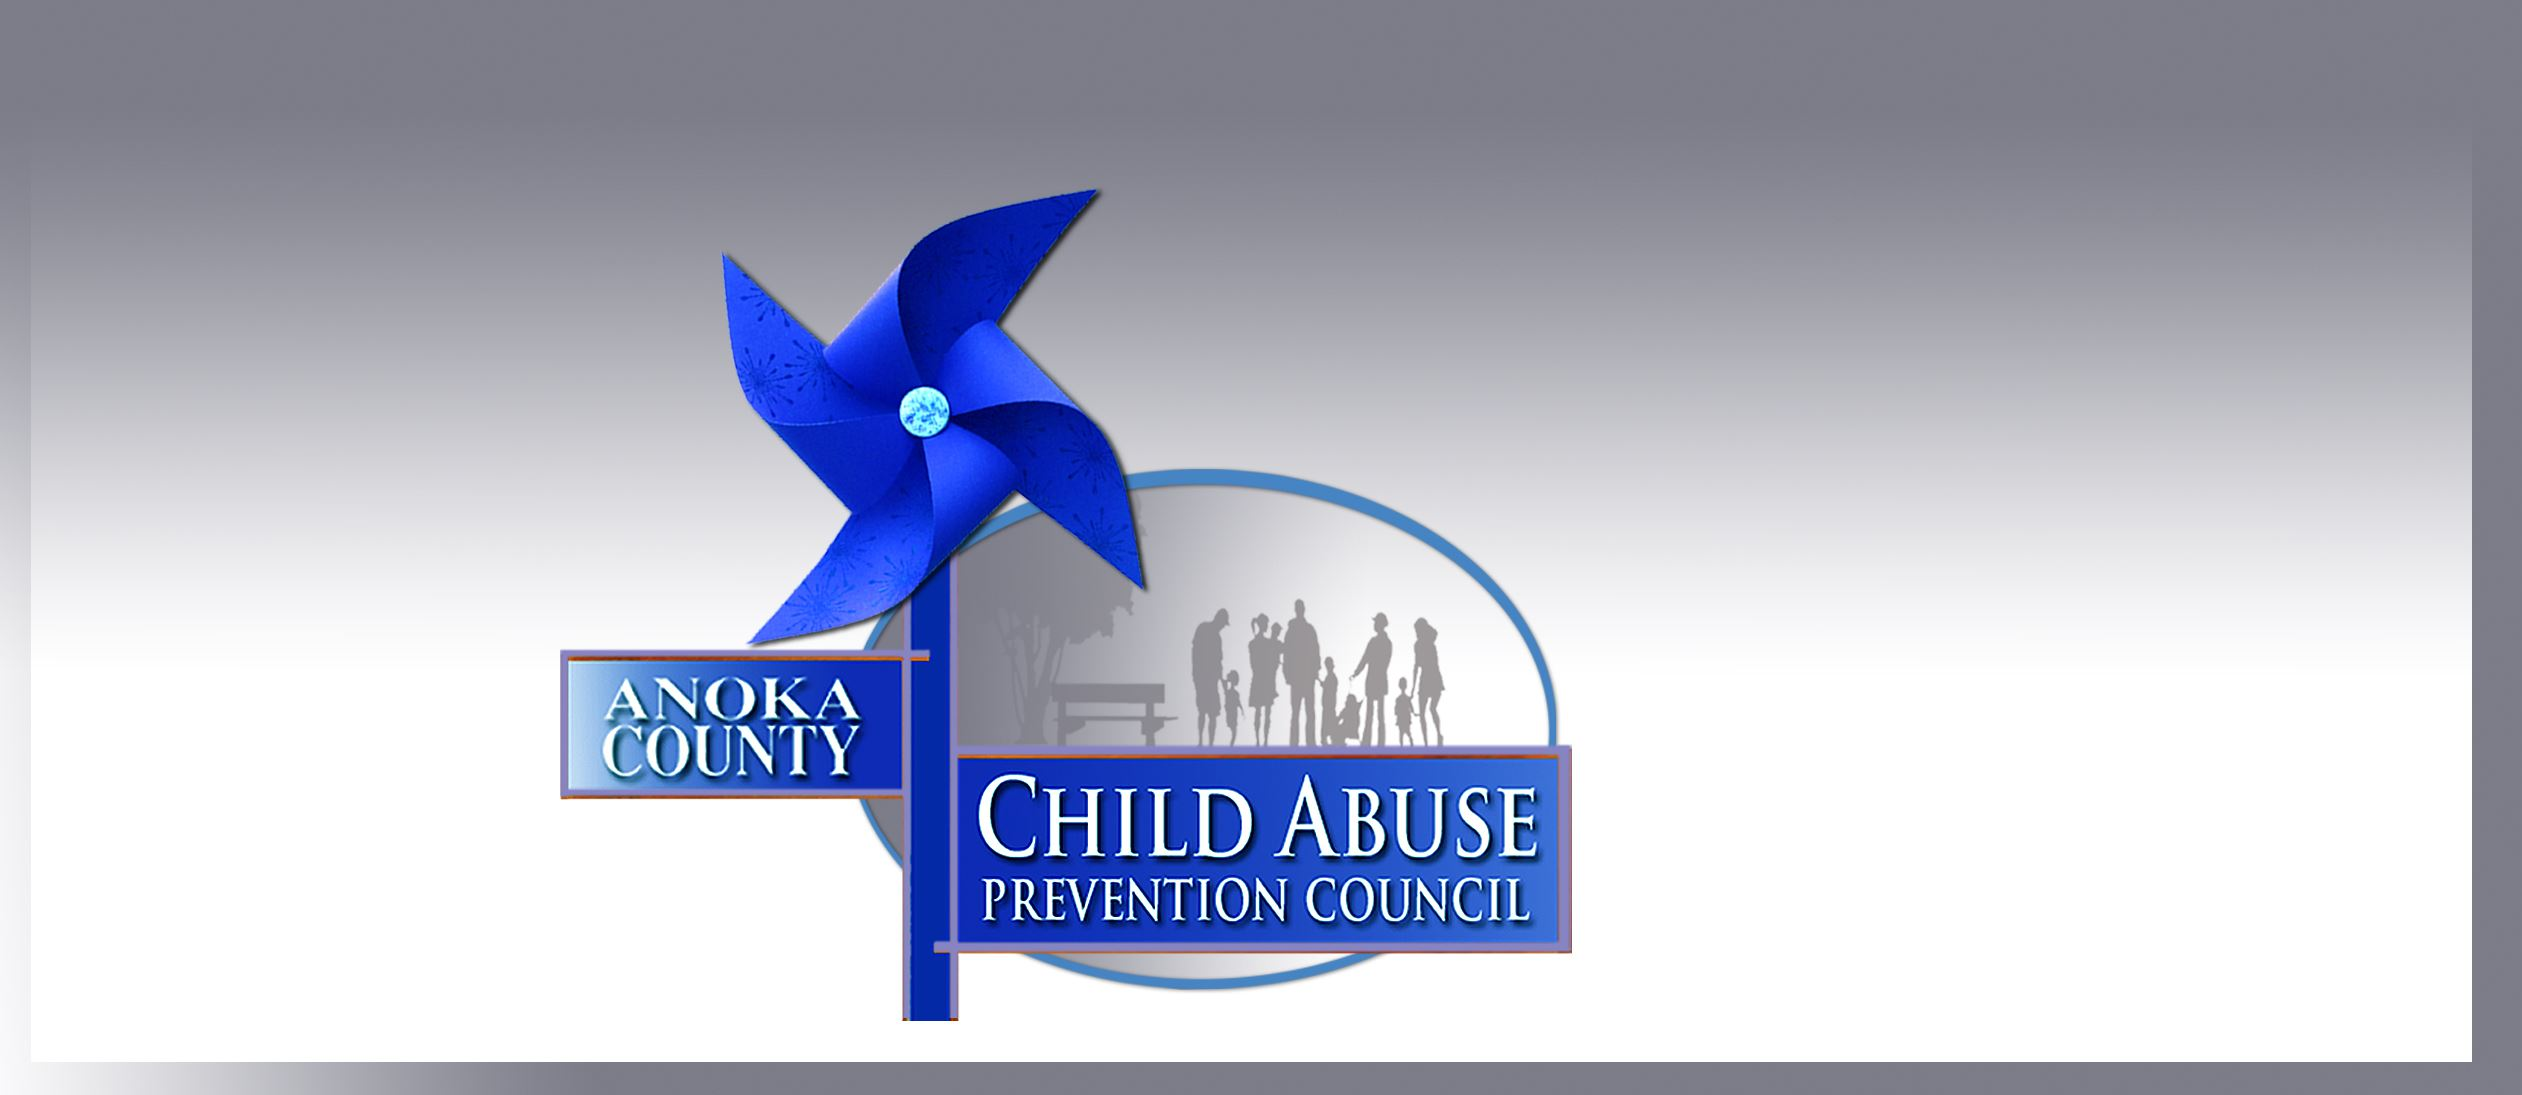 Anoka County Child Abuse Prevention Council Logo Blue